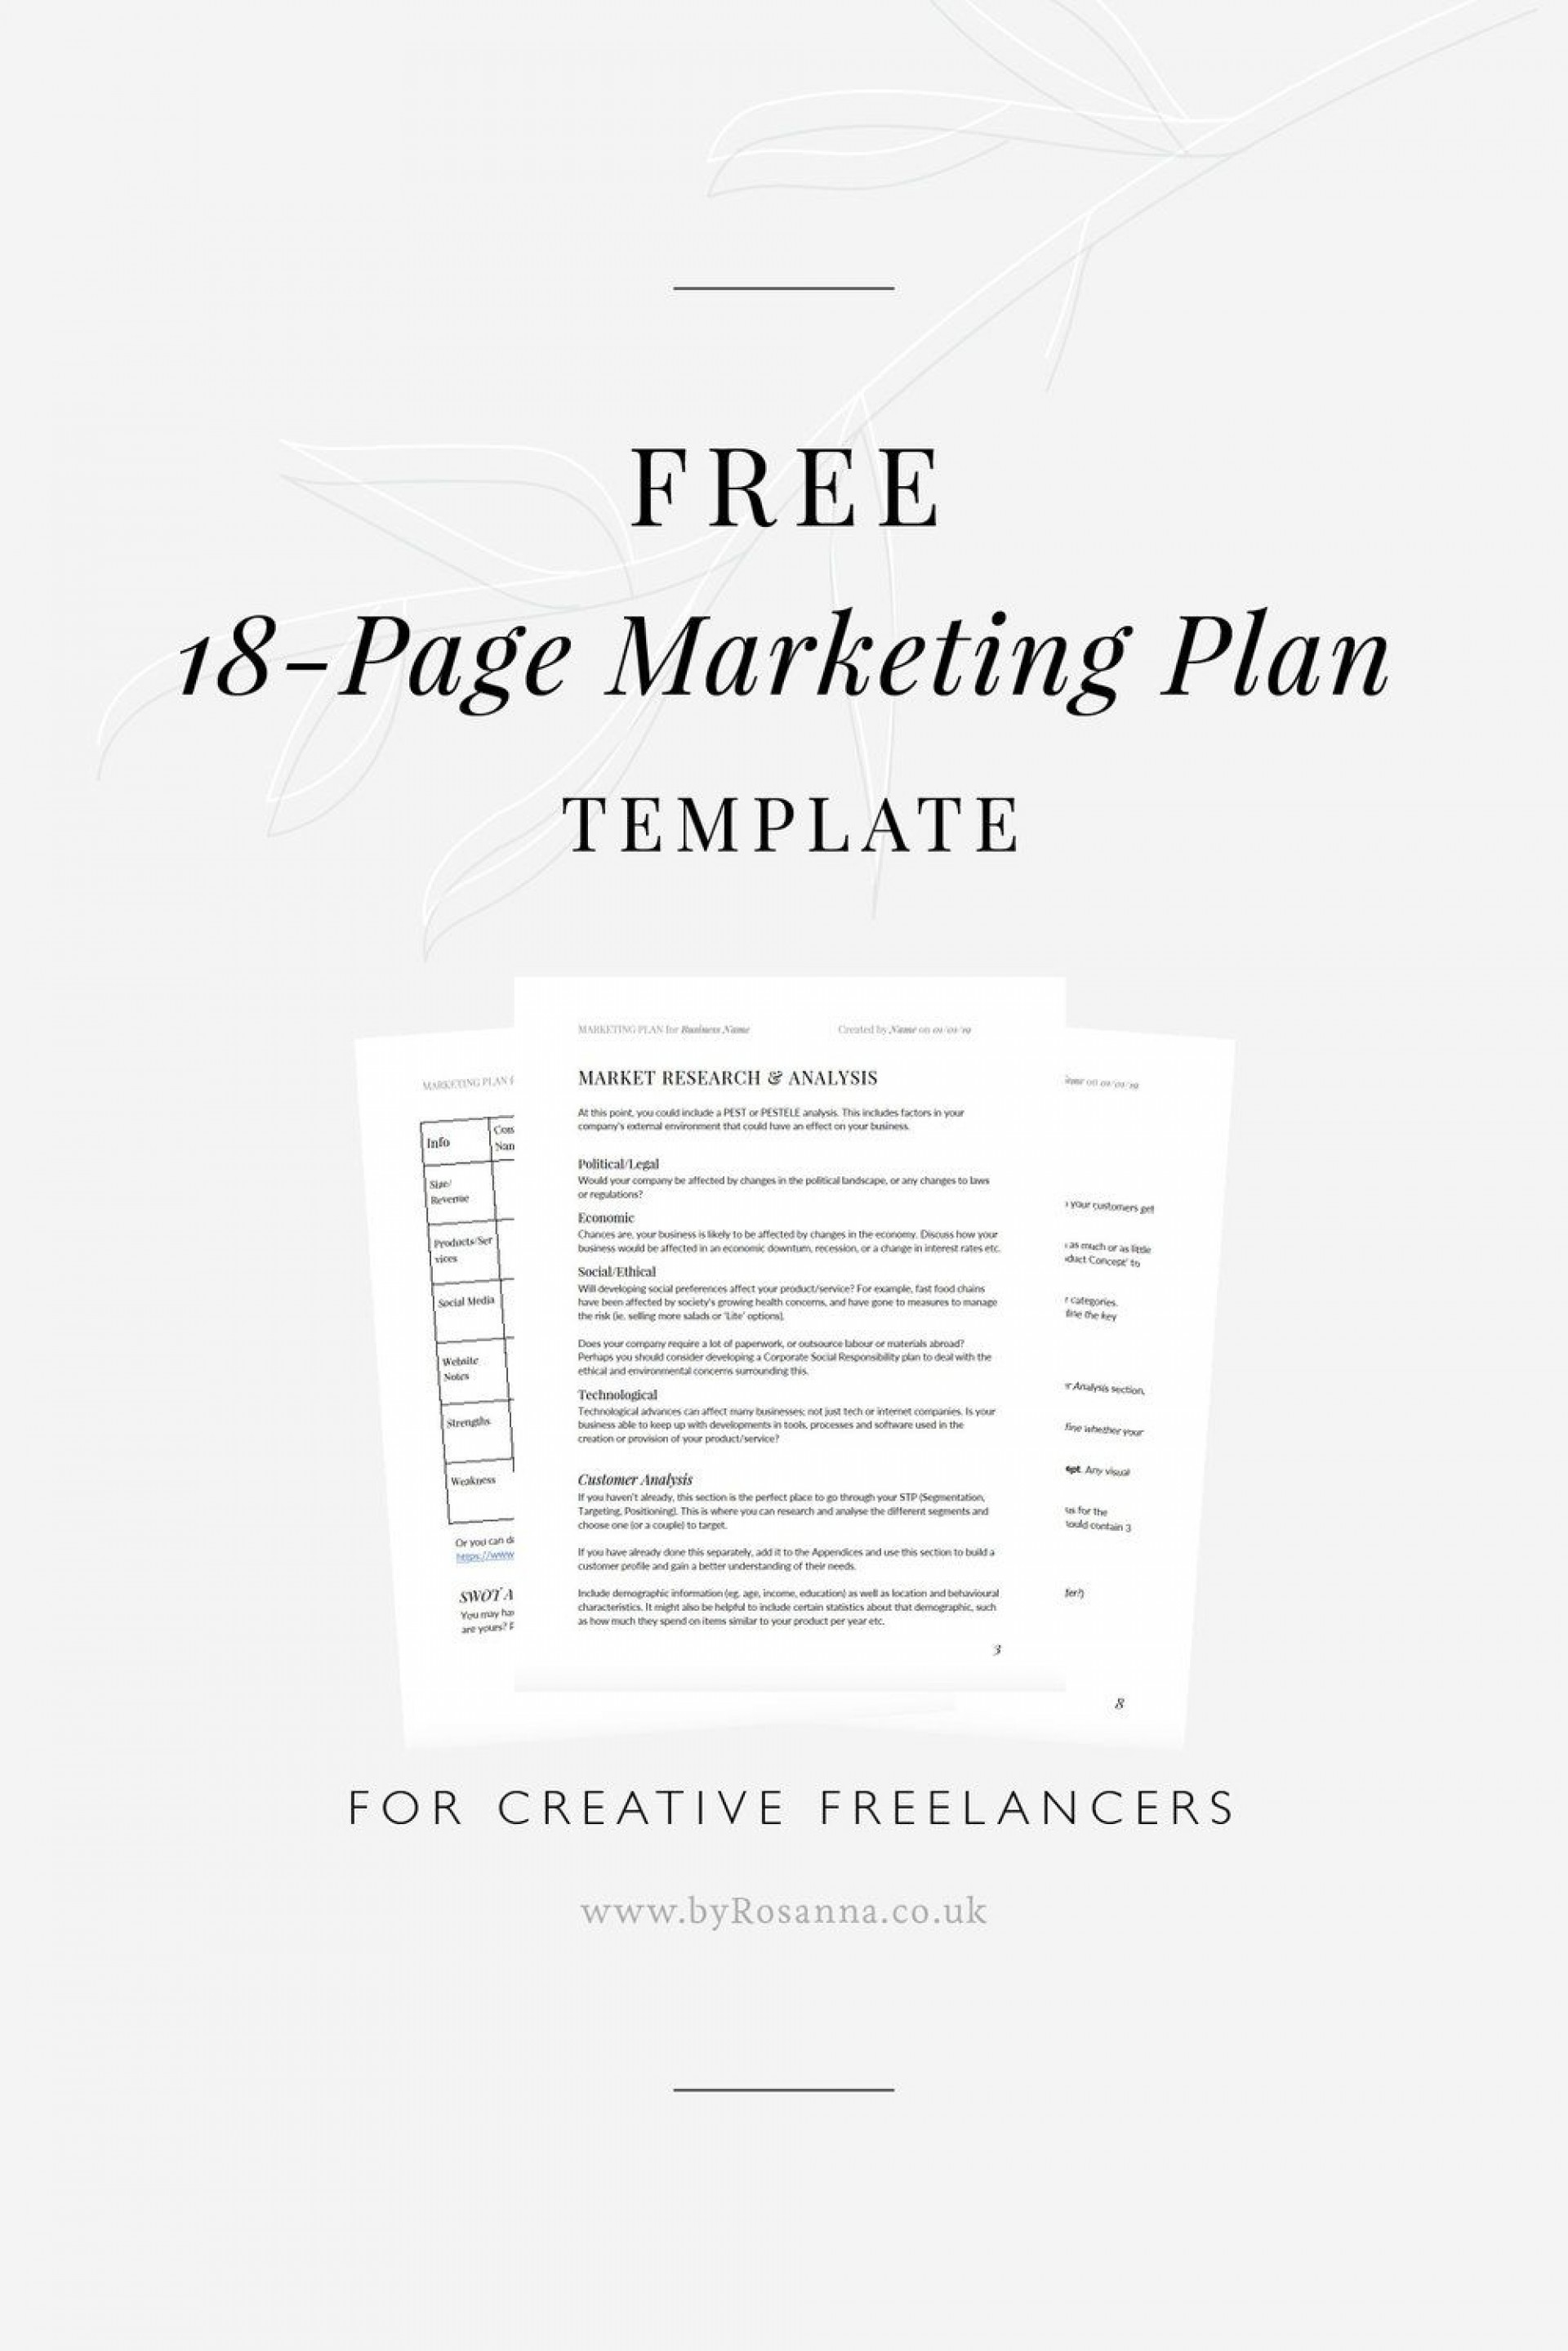 006 Fearsome Marketing Plan Format For Small Busines Image  Business Template Free1920